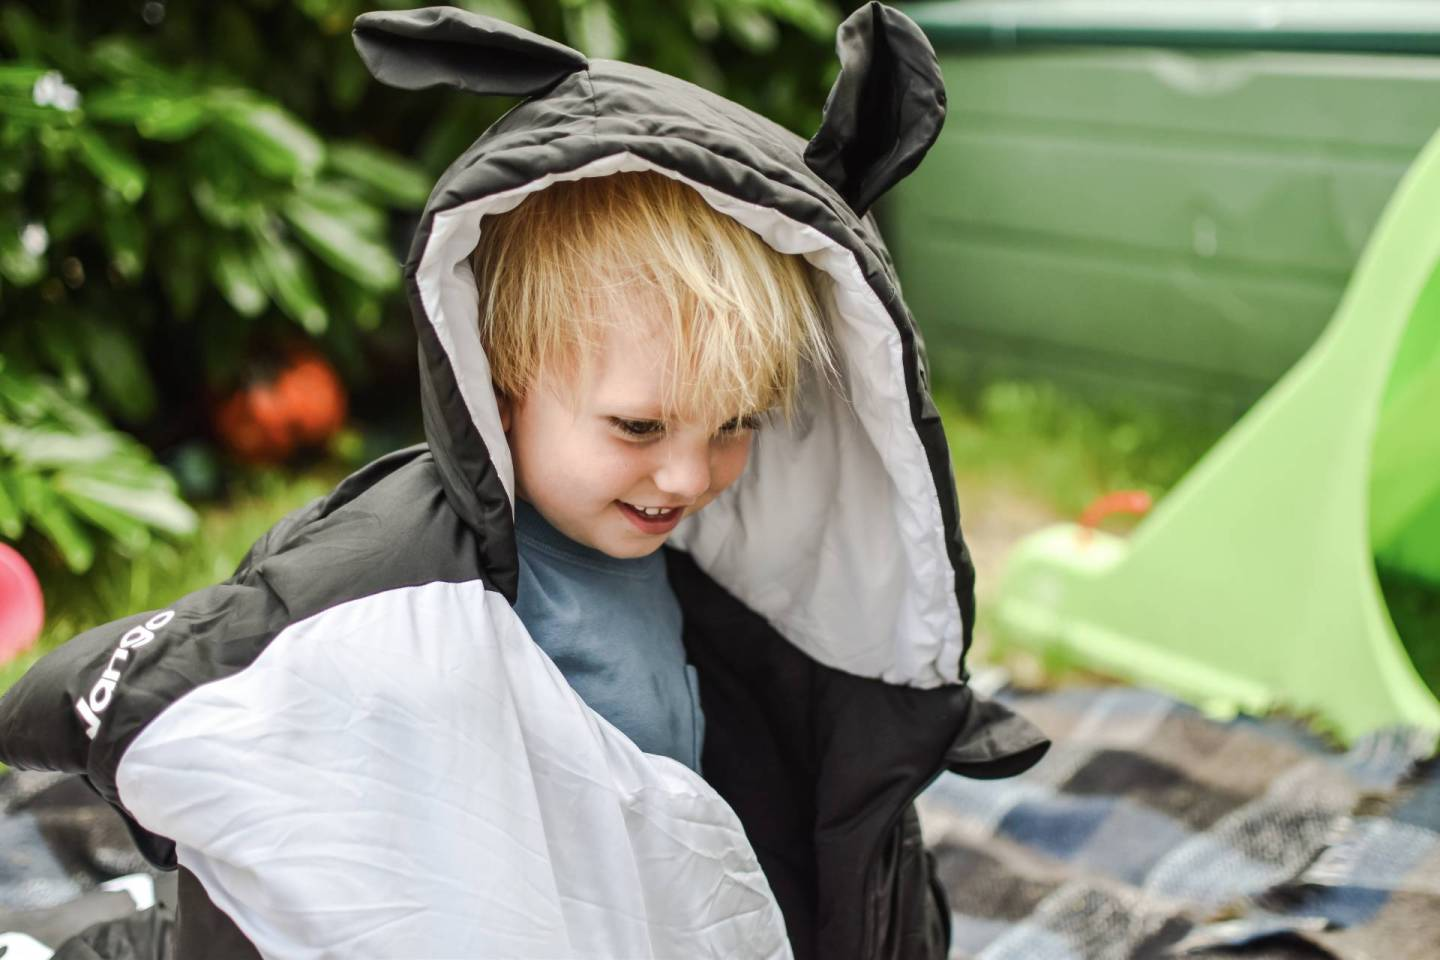 Check Out This Cute Vango Kids Sleeping Bag!